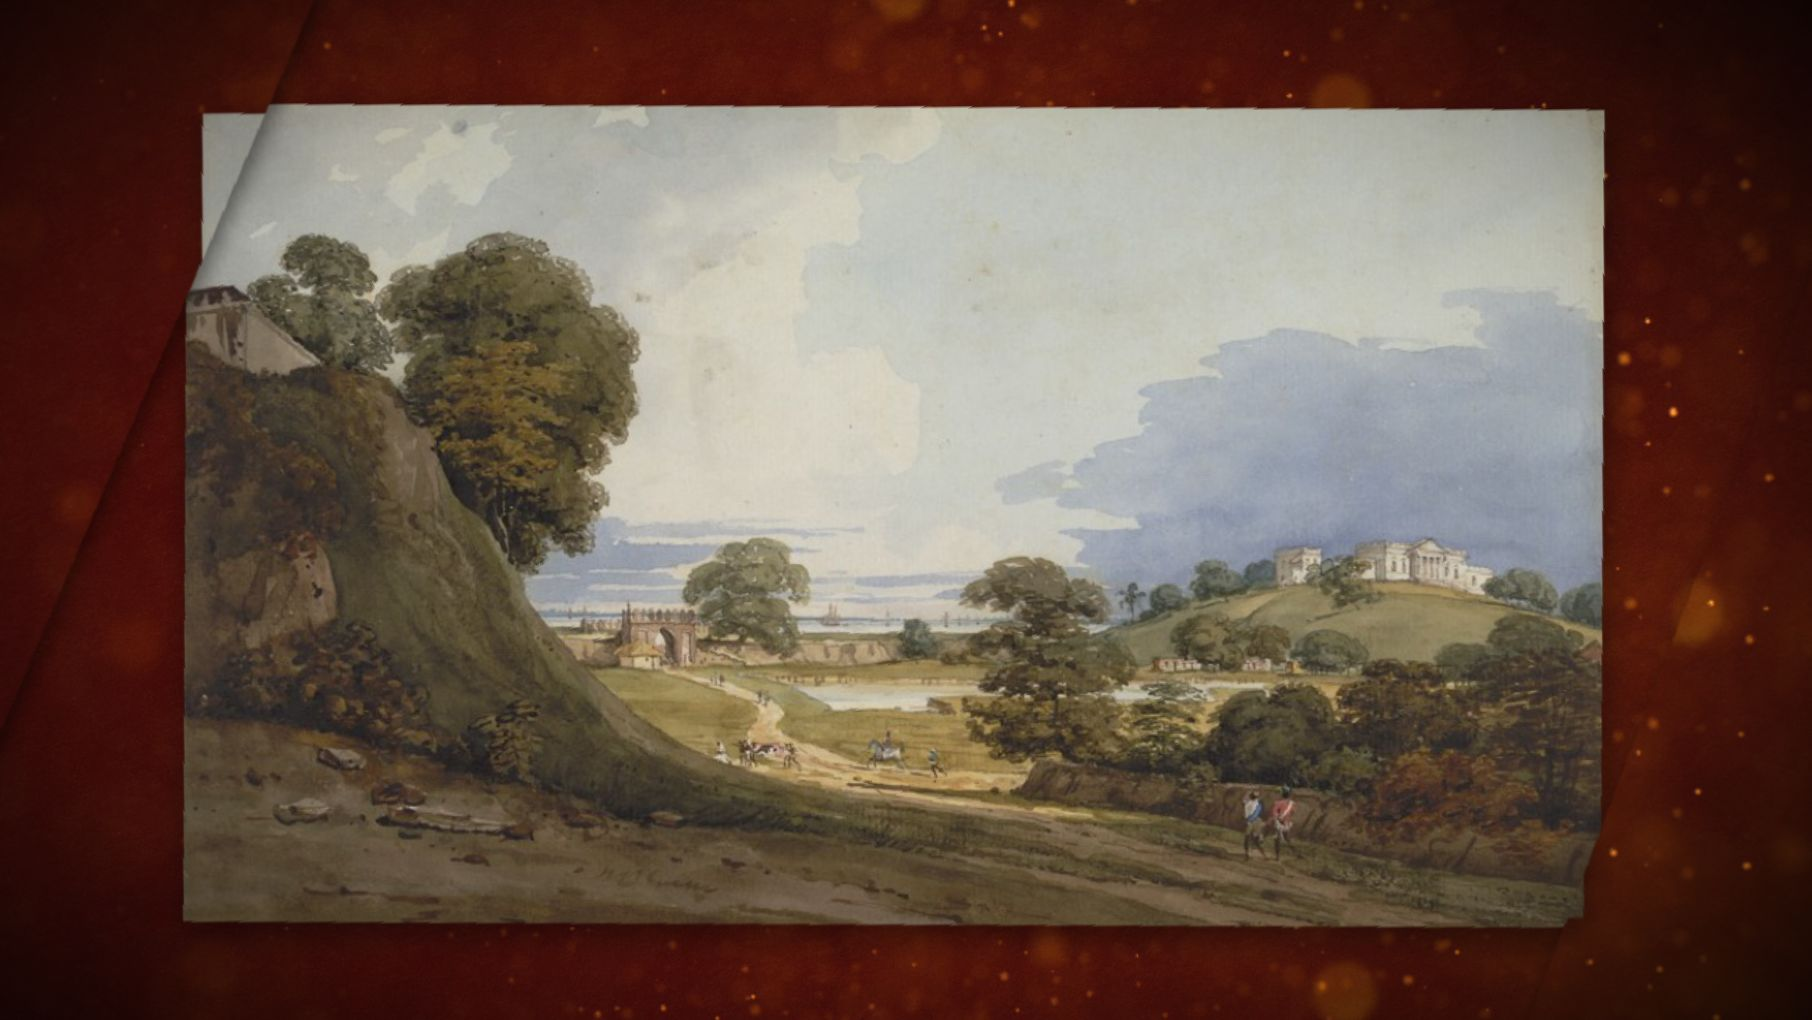 Daniells: The Earliest Views of India